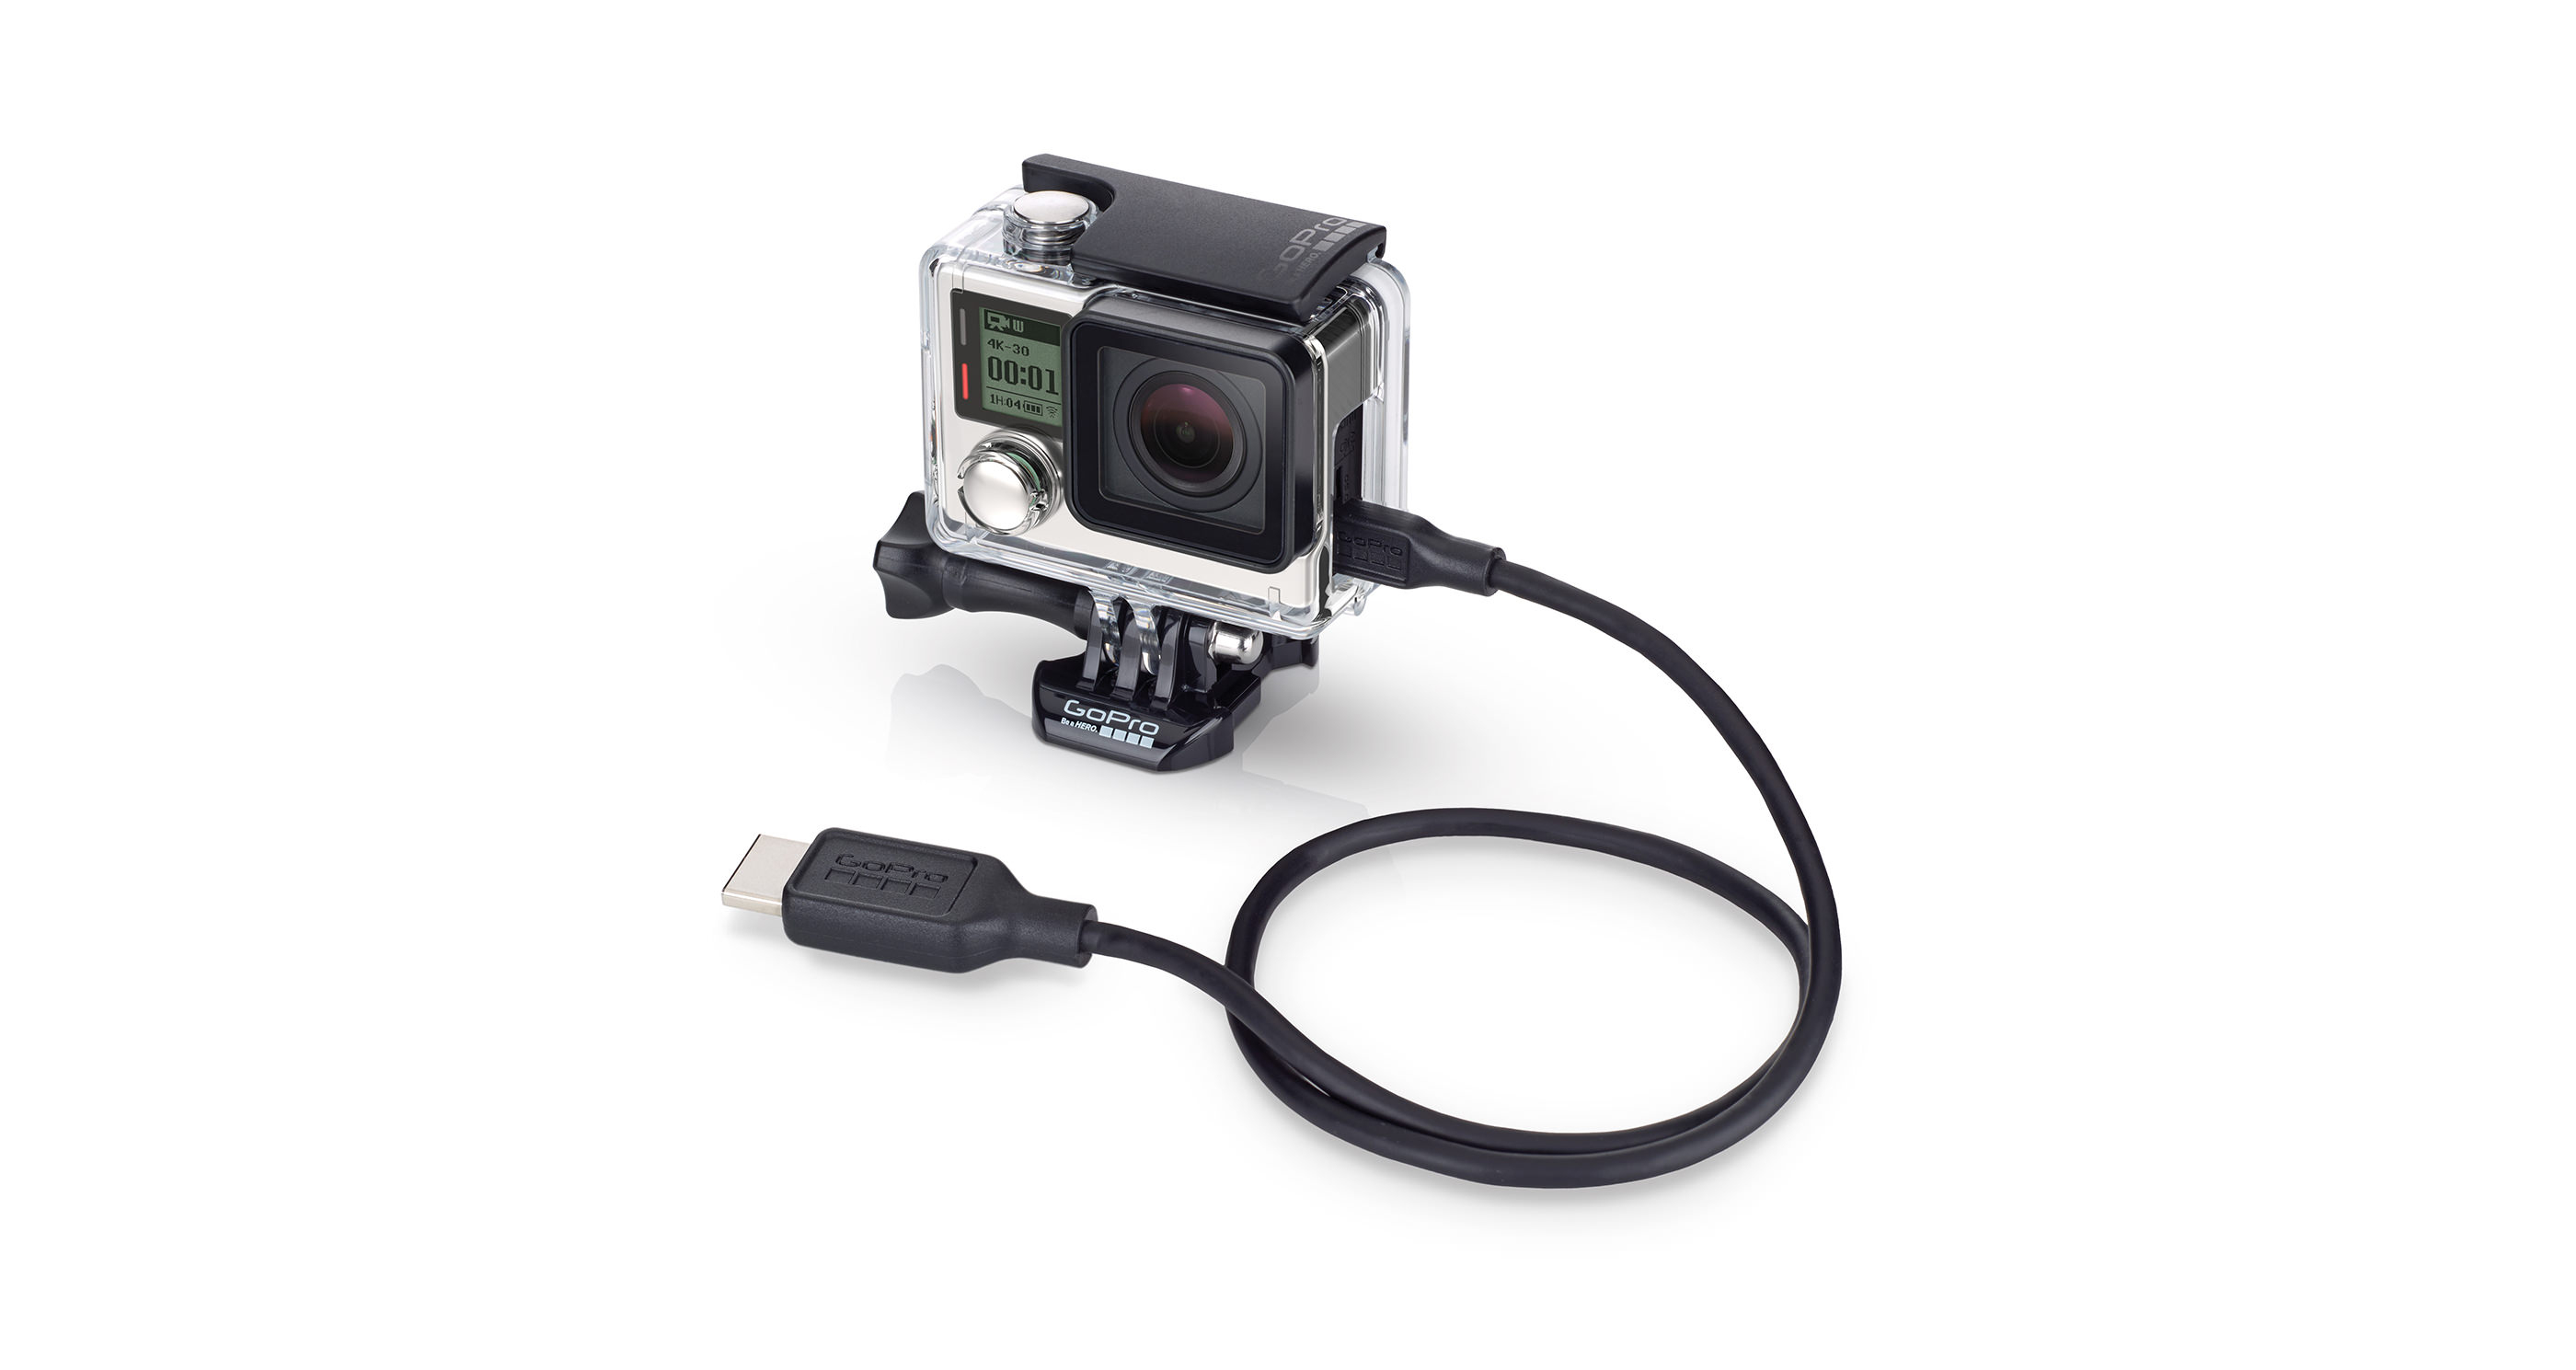 Gopro Hero 3 Usb Wiring Diagram | Manual E-Books - Gopro Hero 3 Usb Wiring Diagram